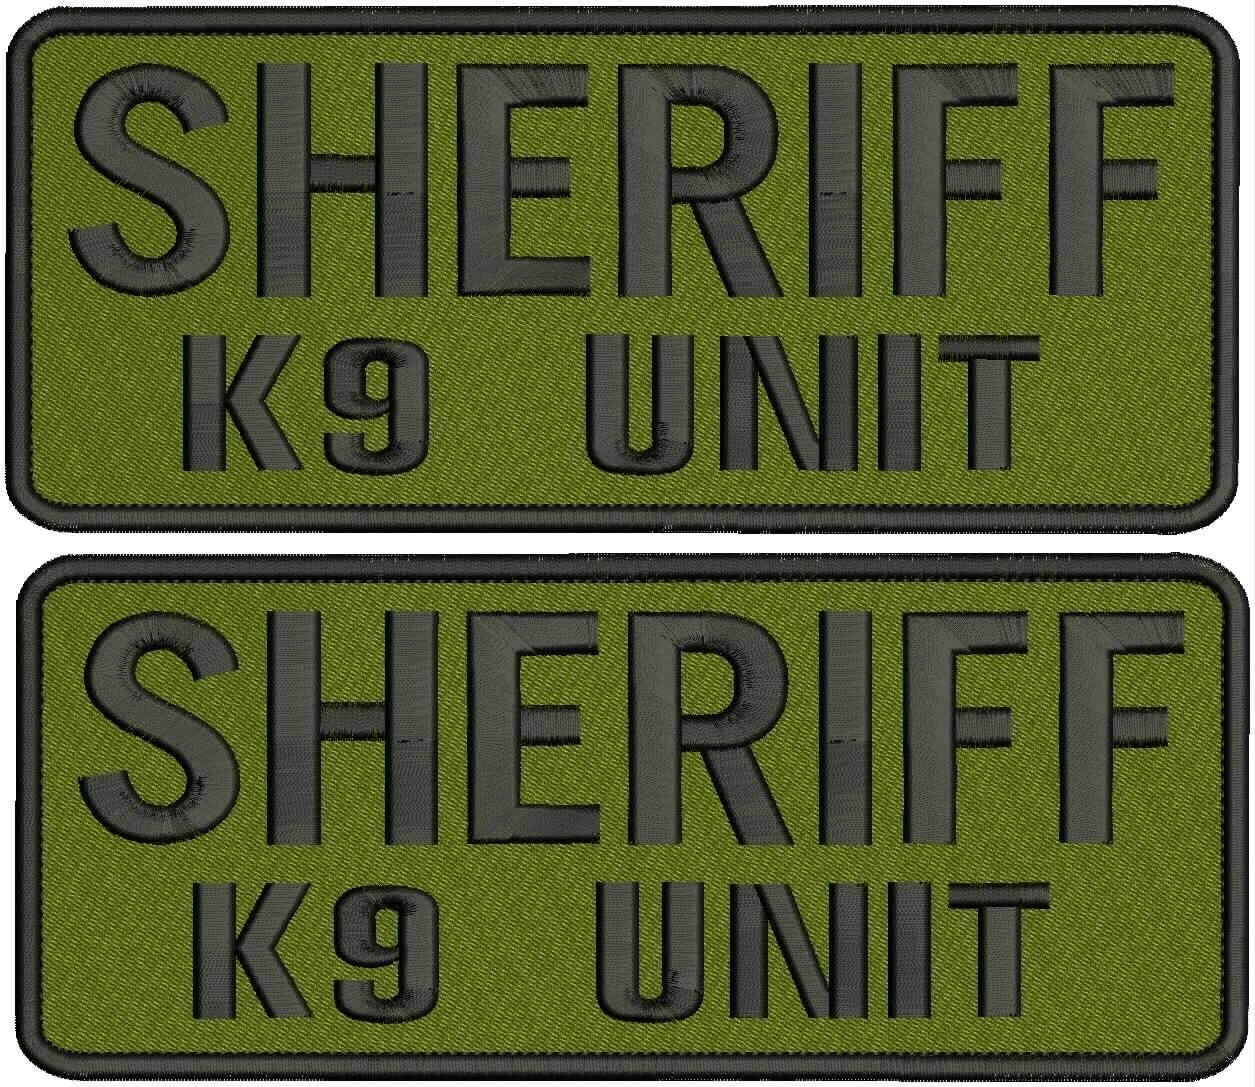 Embroidered Patch - Patches Price reduction for Women k9 Max 60% OFF Unit Sheriff Hook Man